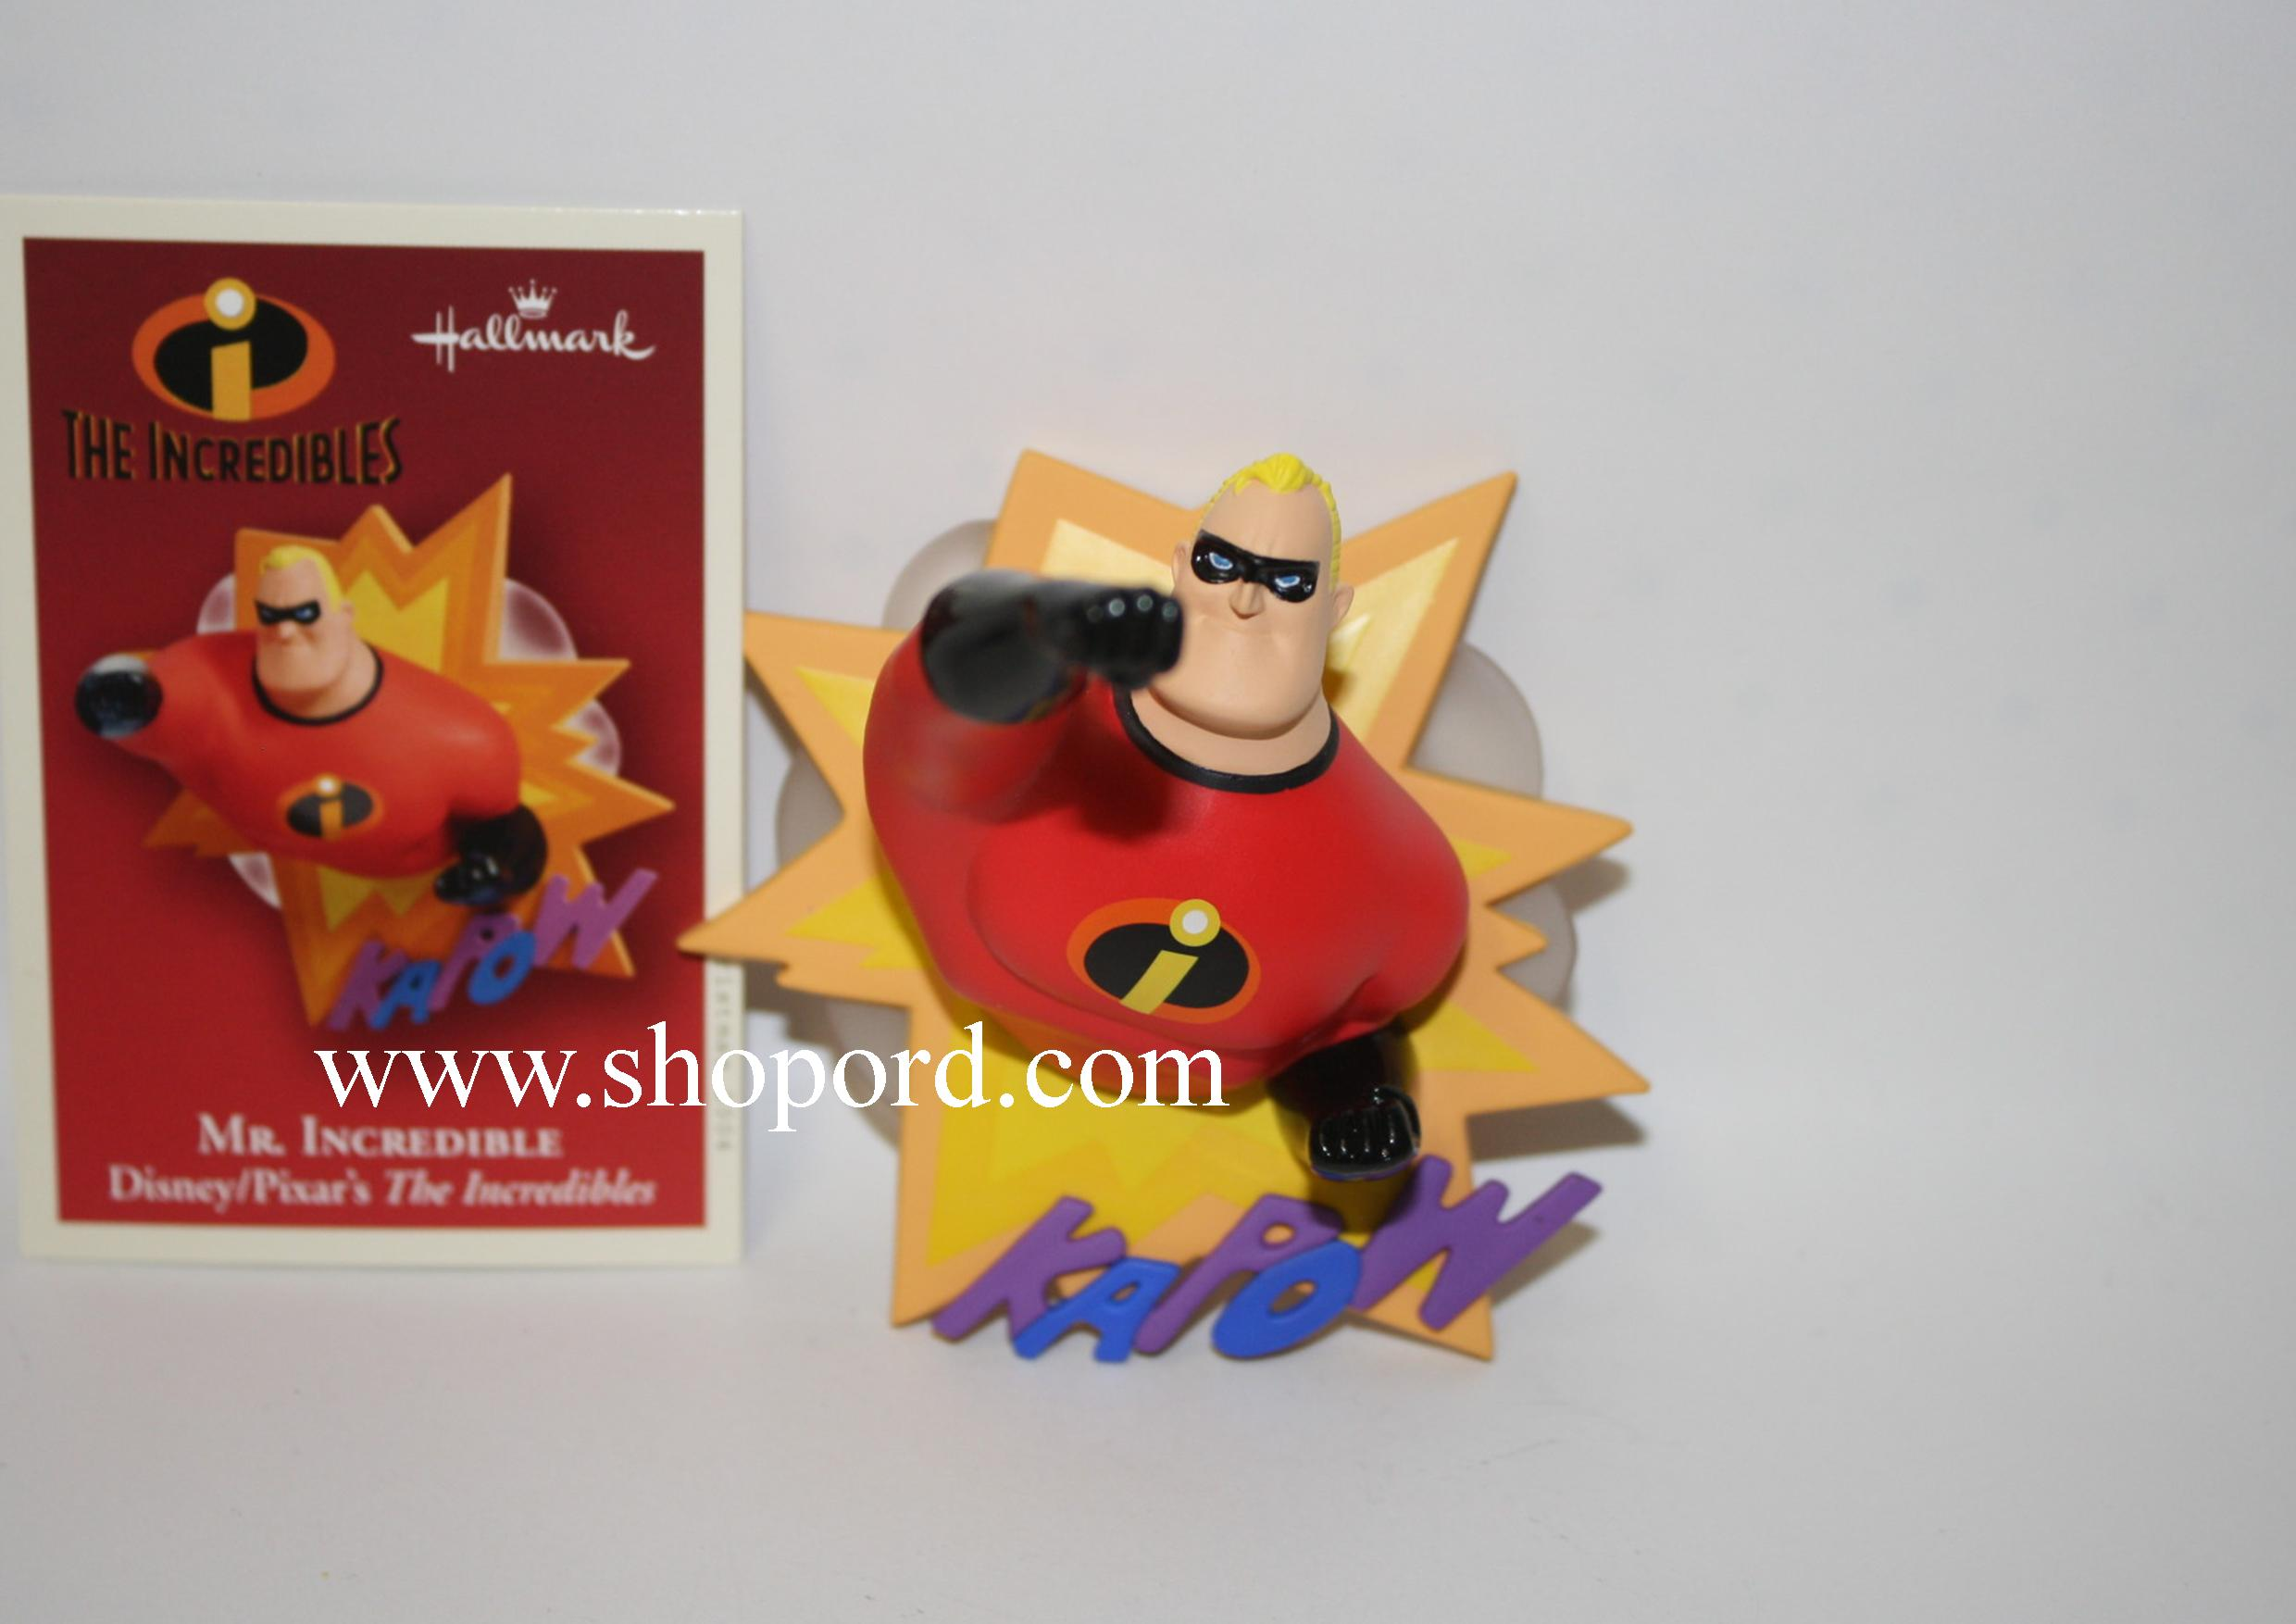 Hallmark 2004 Mr Incredible Ornament Disney Pixars The Incredibles QXD5081